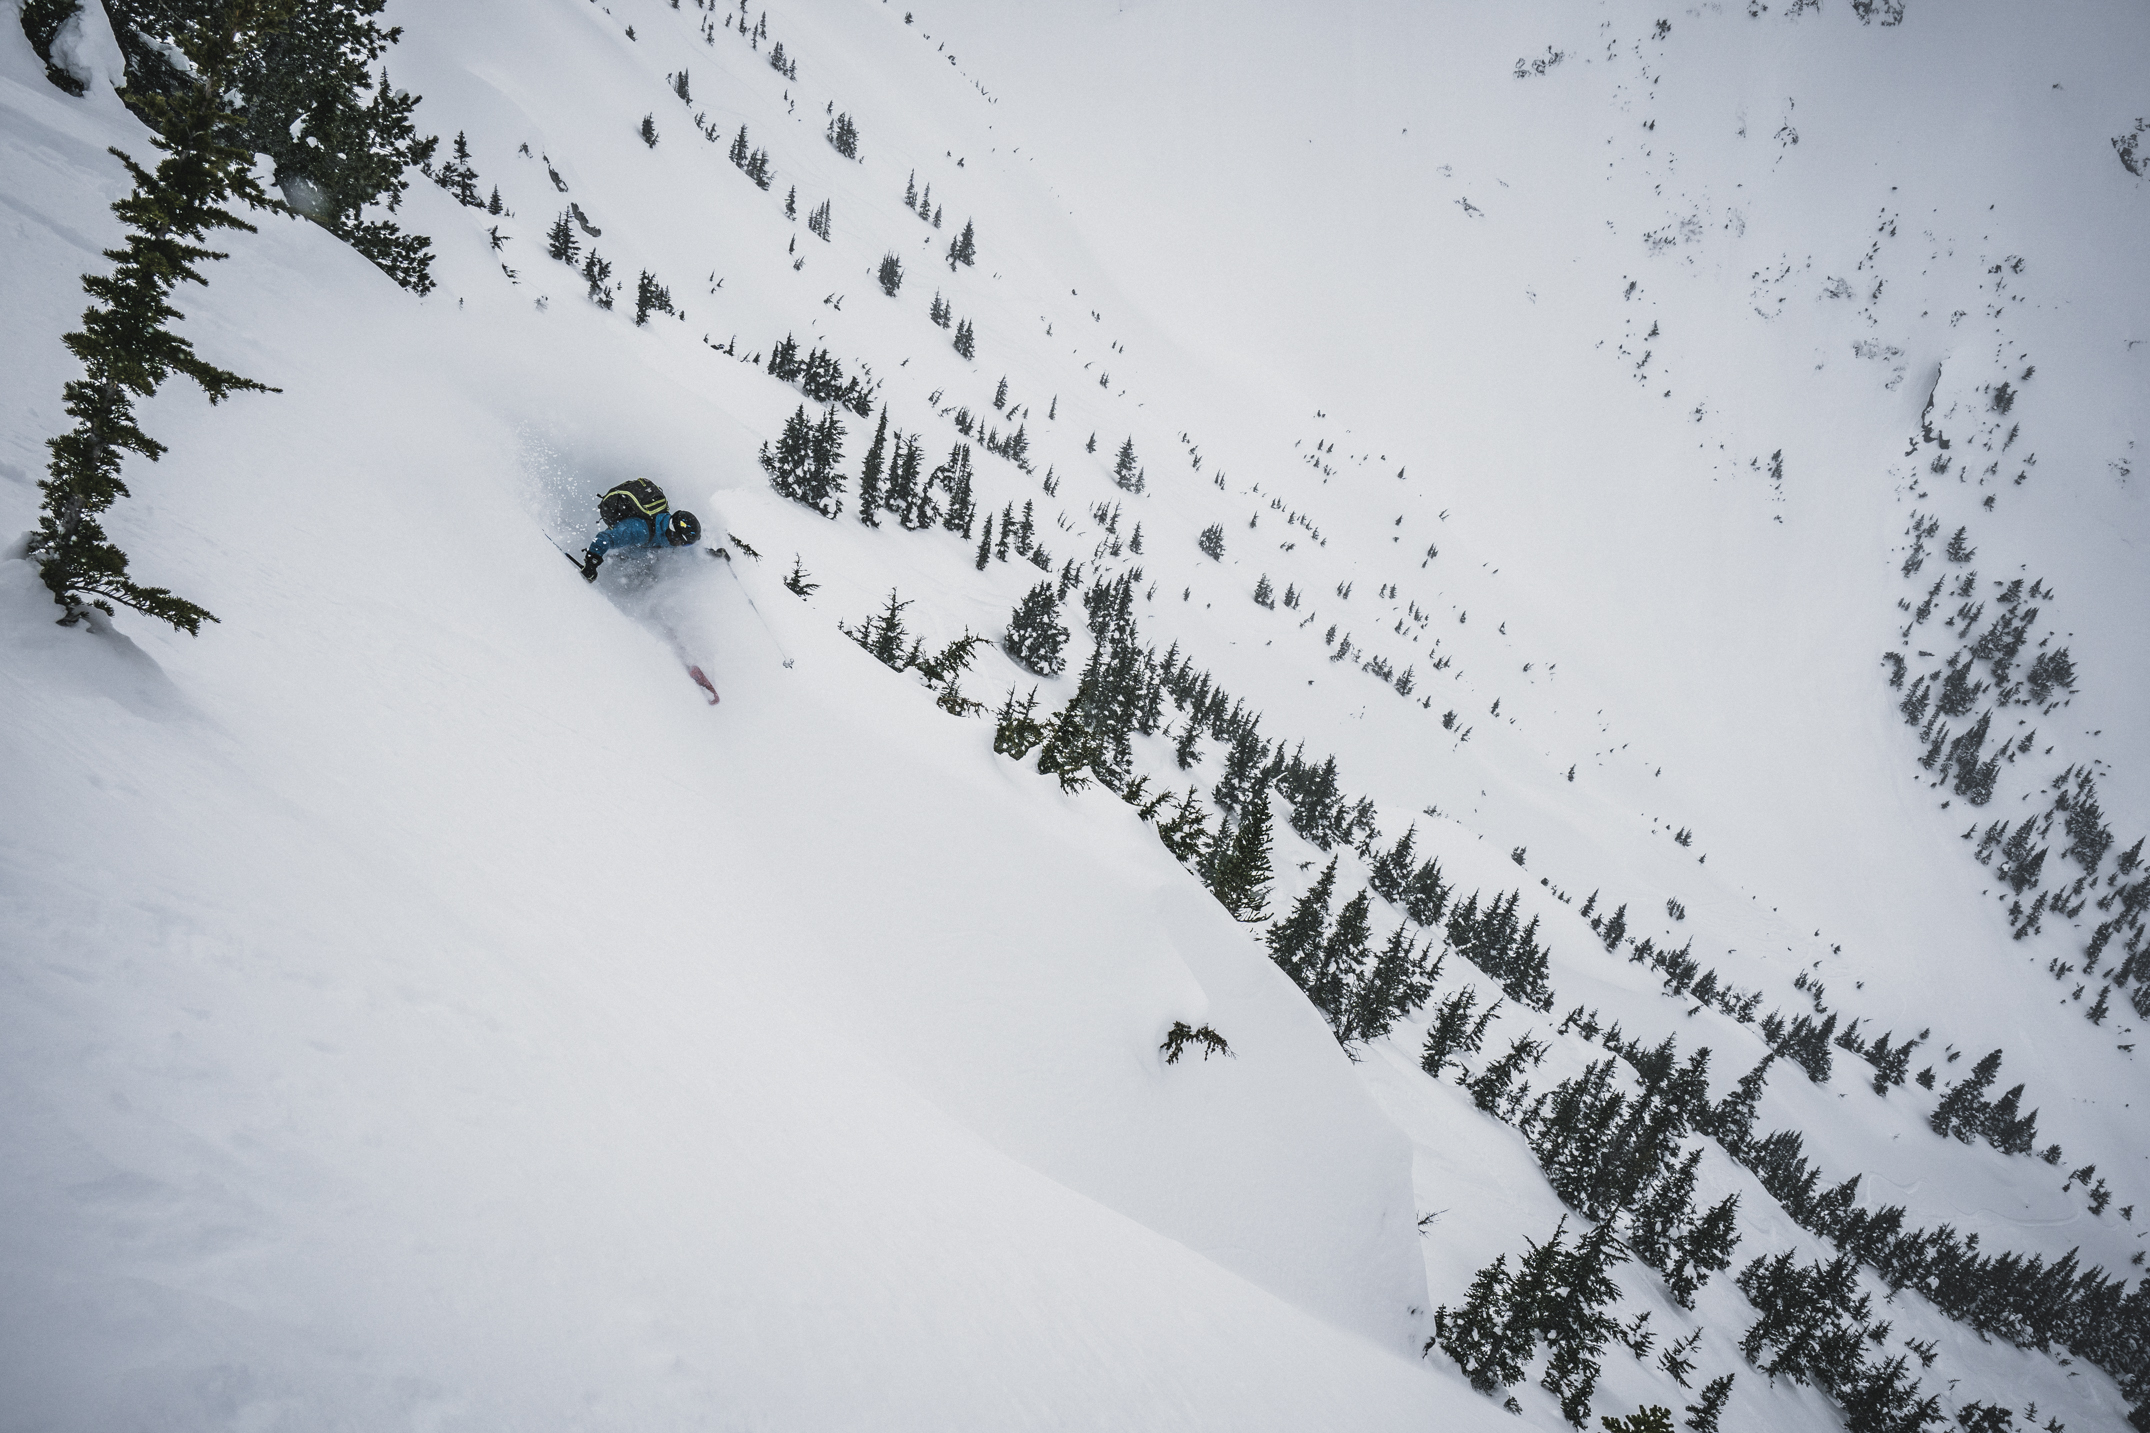 Good stability gave us a chance to explore the steeps on the North side of Tom George Peak.Photo credit: Louis Arevalo